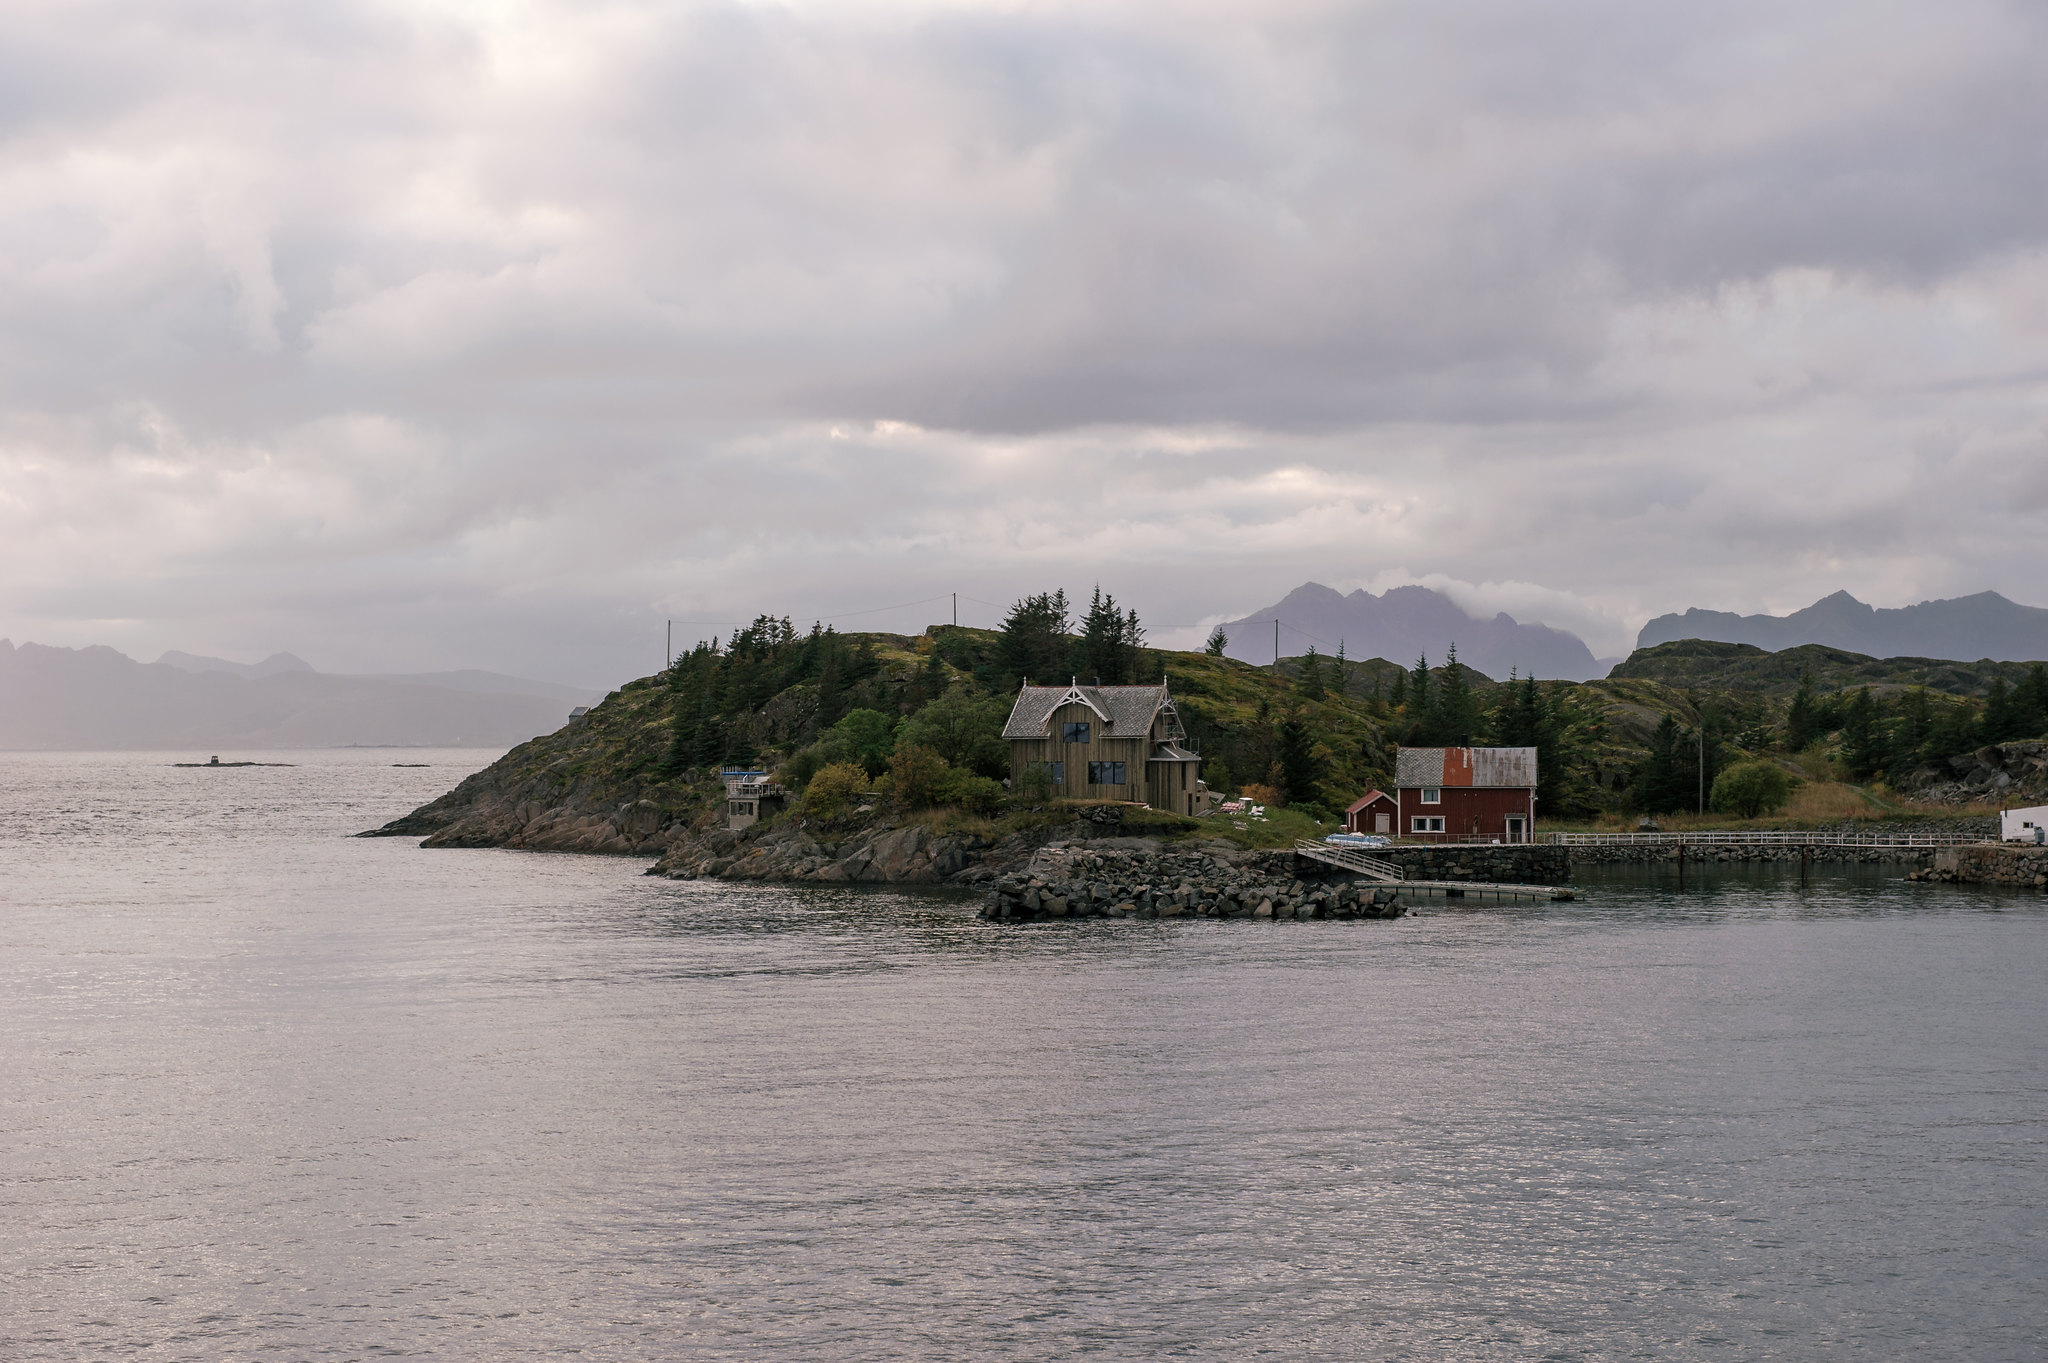 Cabins on the rocks